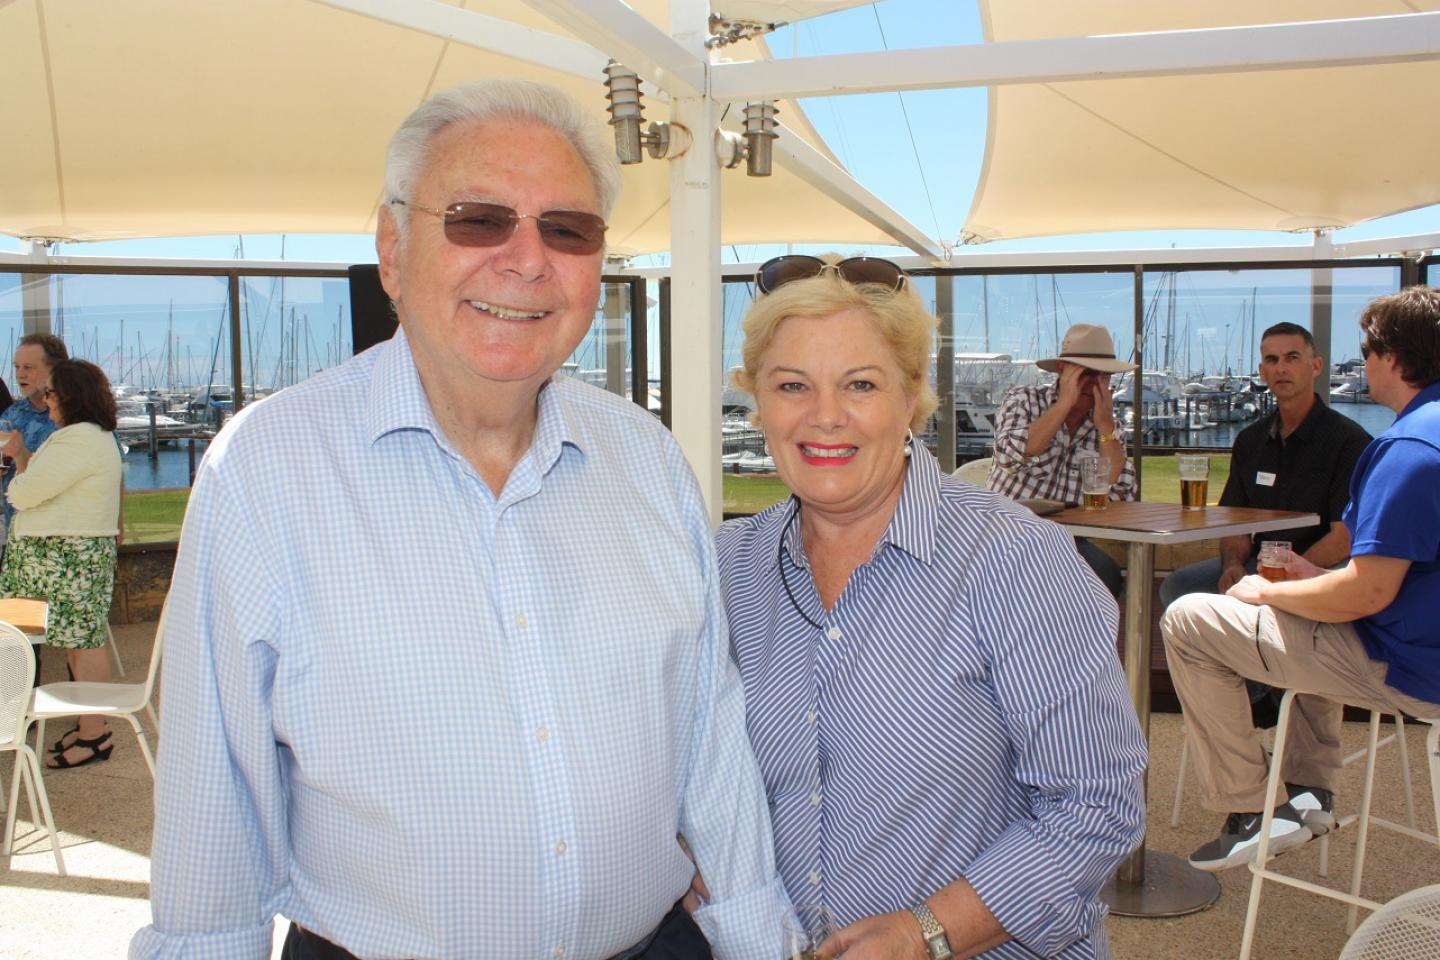 Ausplow managing director John Ryan AM and his partner Bernadette Turner welcomed guests at last Saturday's annual Ausplow Christmas wind-up at the Fremantle Sailing Club.